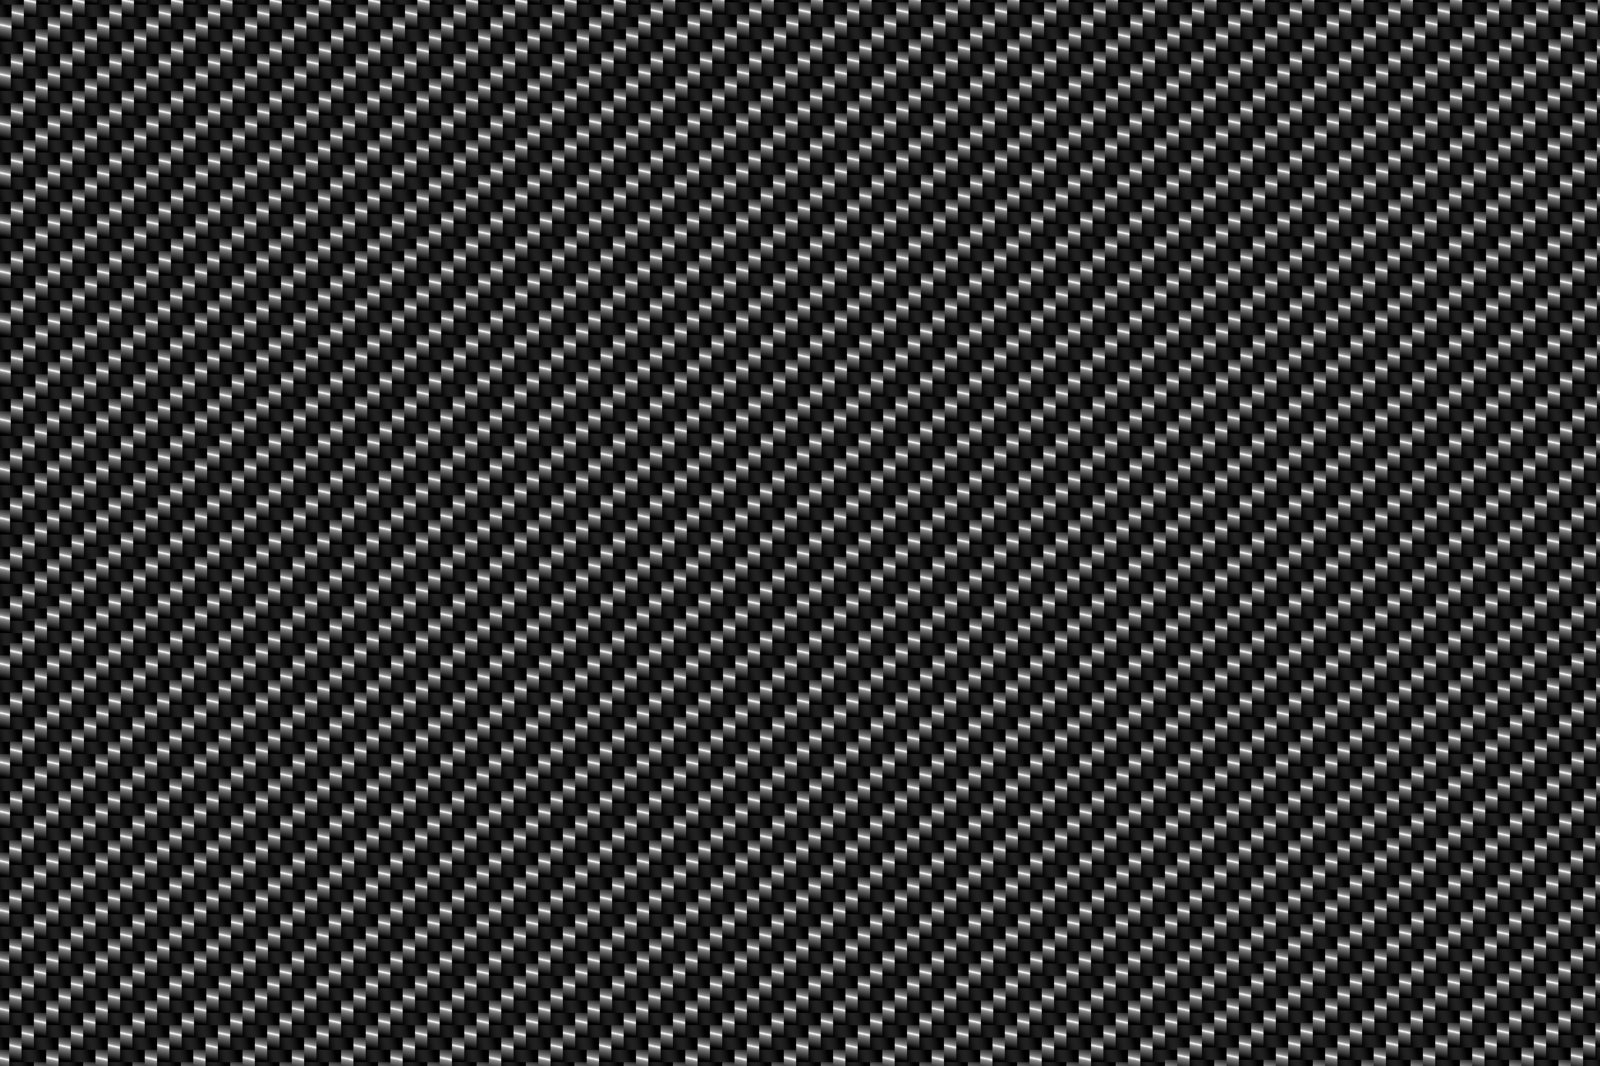 carbon fiber images | hd wallpapers pulse